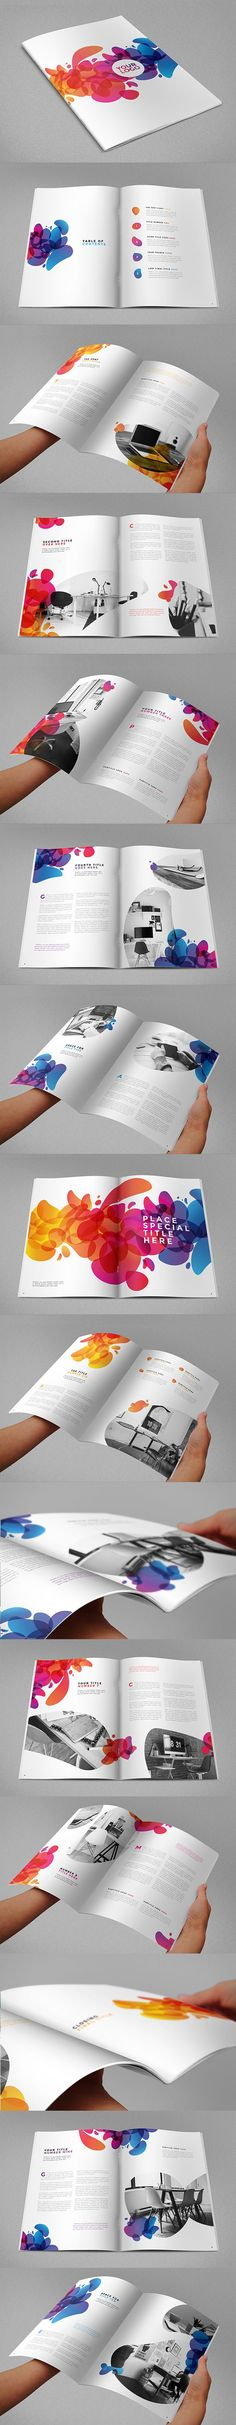 I realy like the colors in this editorial design, it was more attractive because they use black and wihte colors for the picture but they highlights with colorful design and creative, however the design was simple, they   https://www.pinterest.com/pin/397794579566415185/